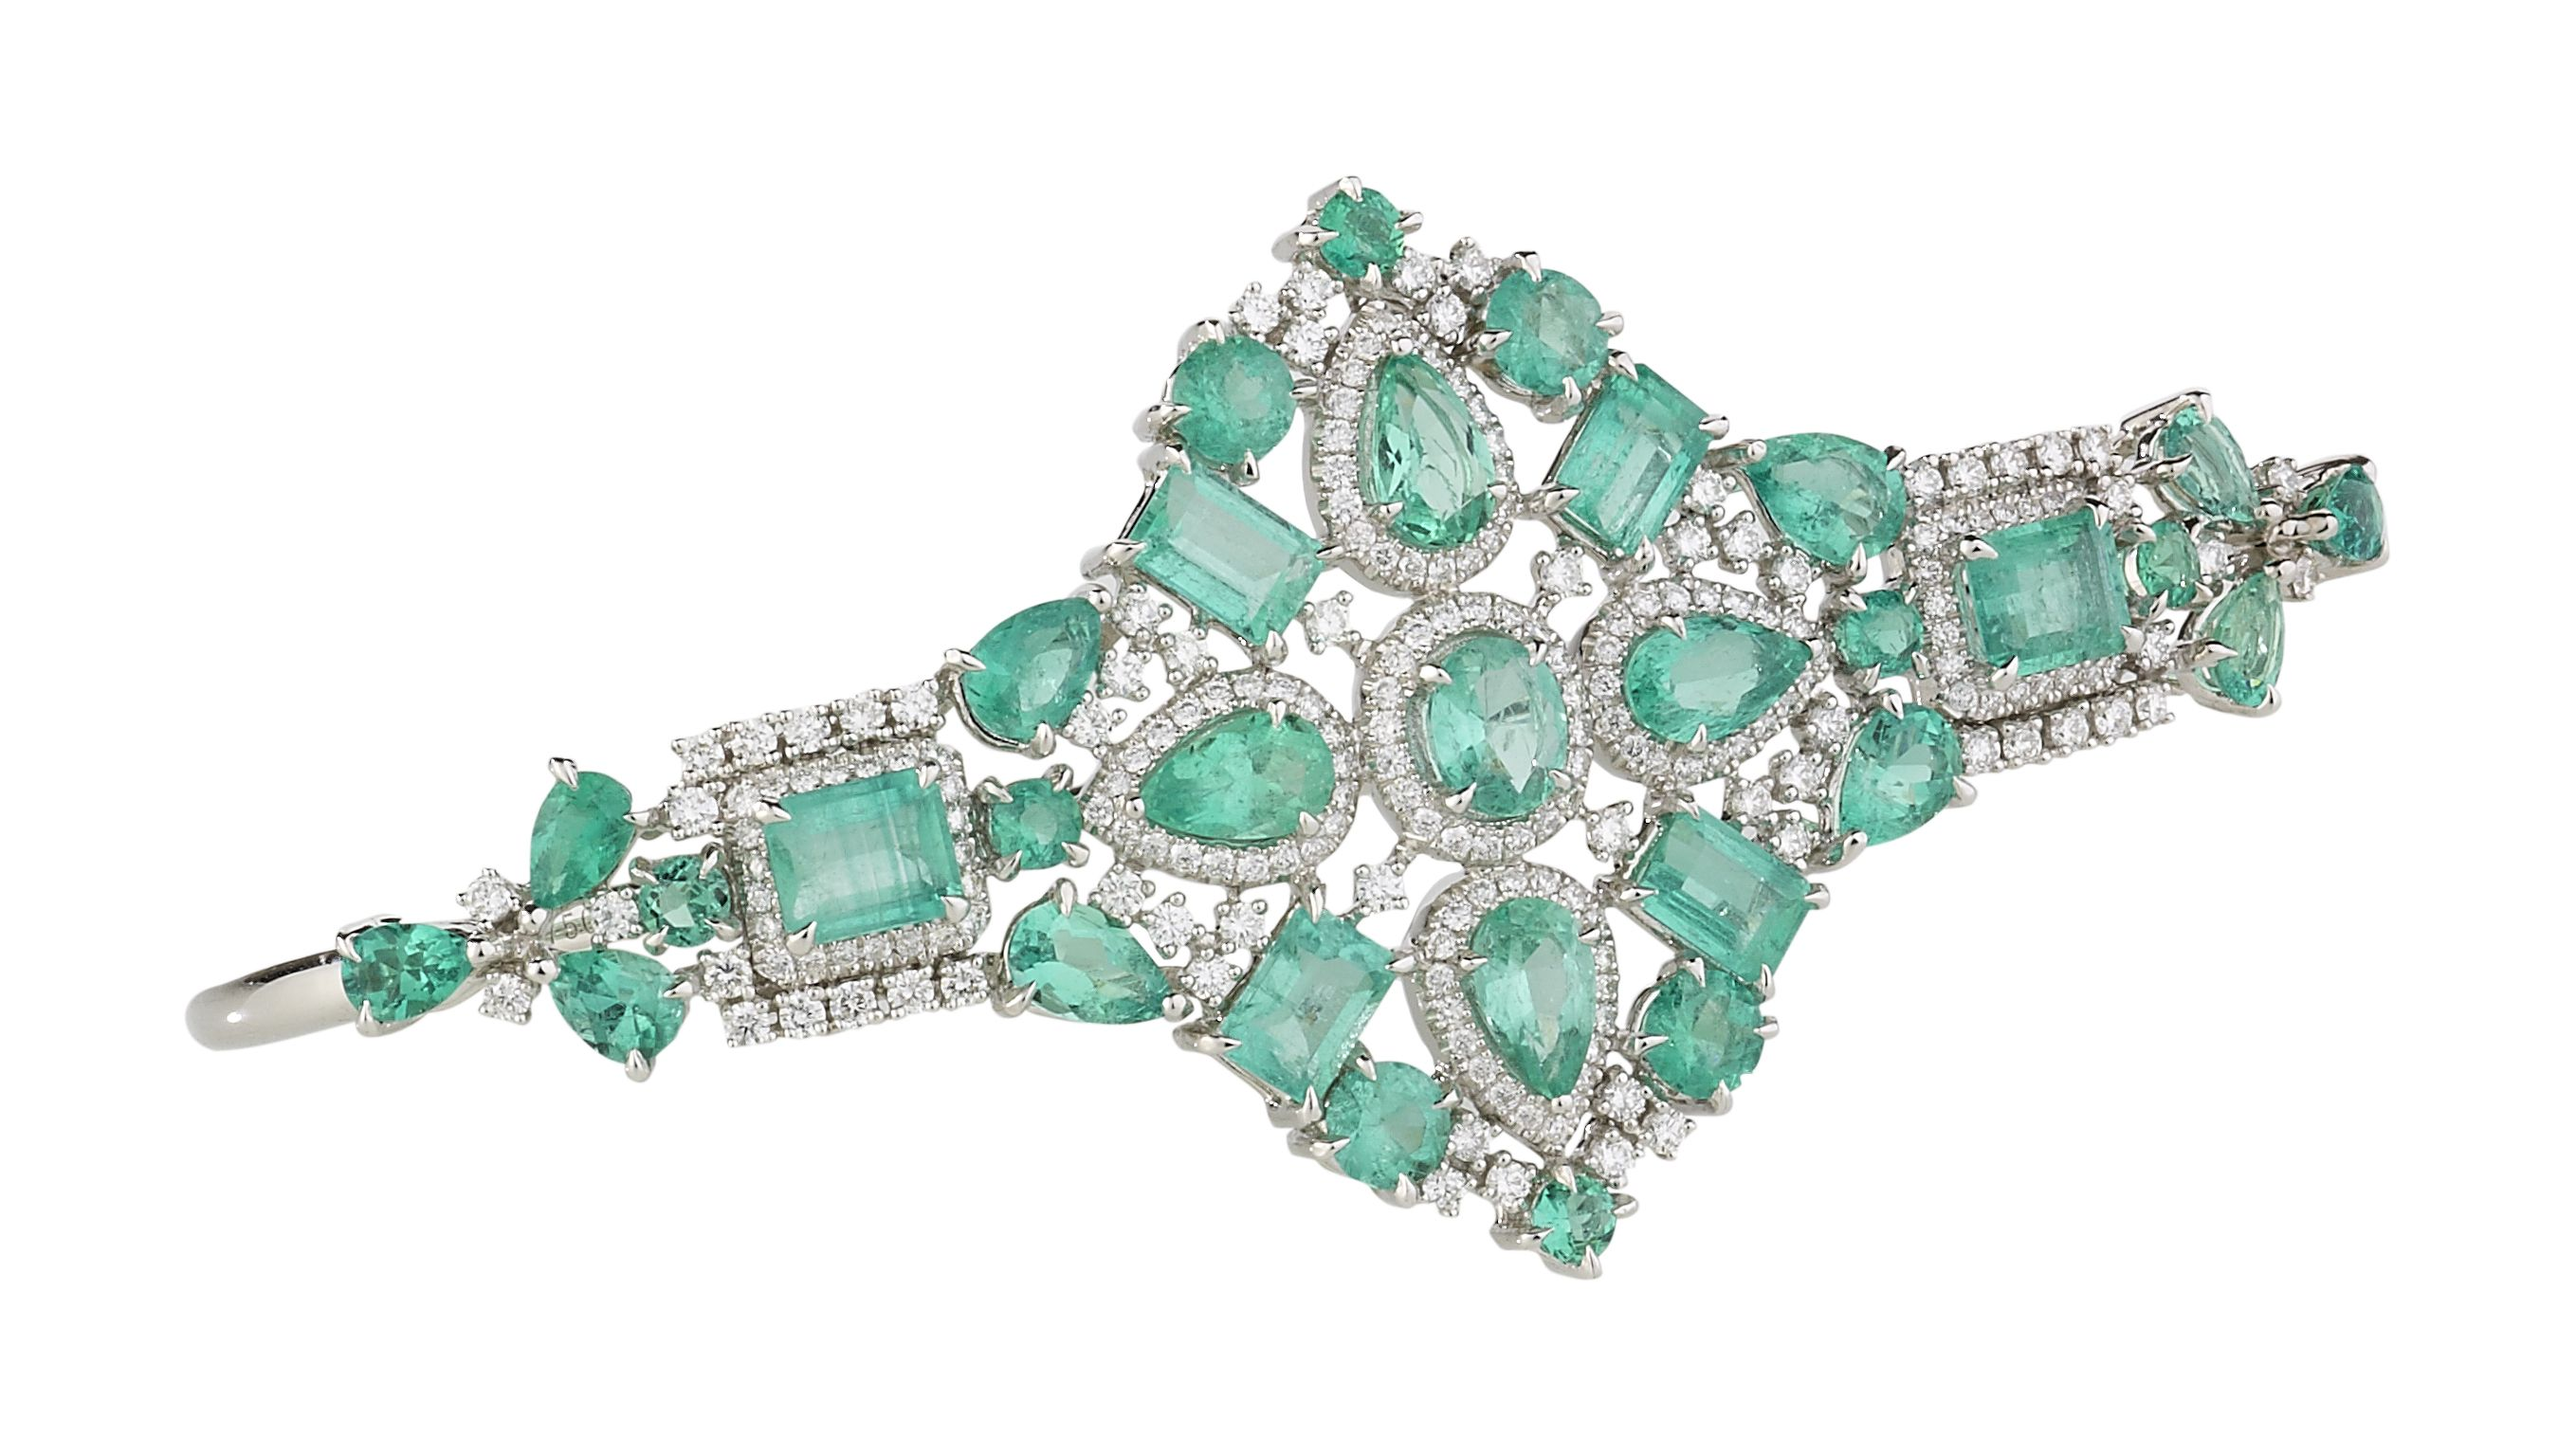 Gaydamak Emerald Ring and Cuff Bracelet I5Z7jzHB7